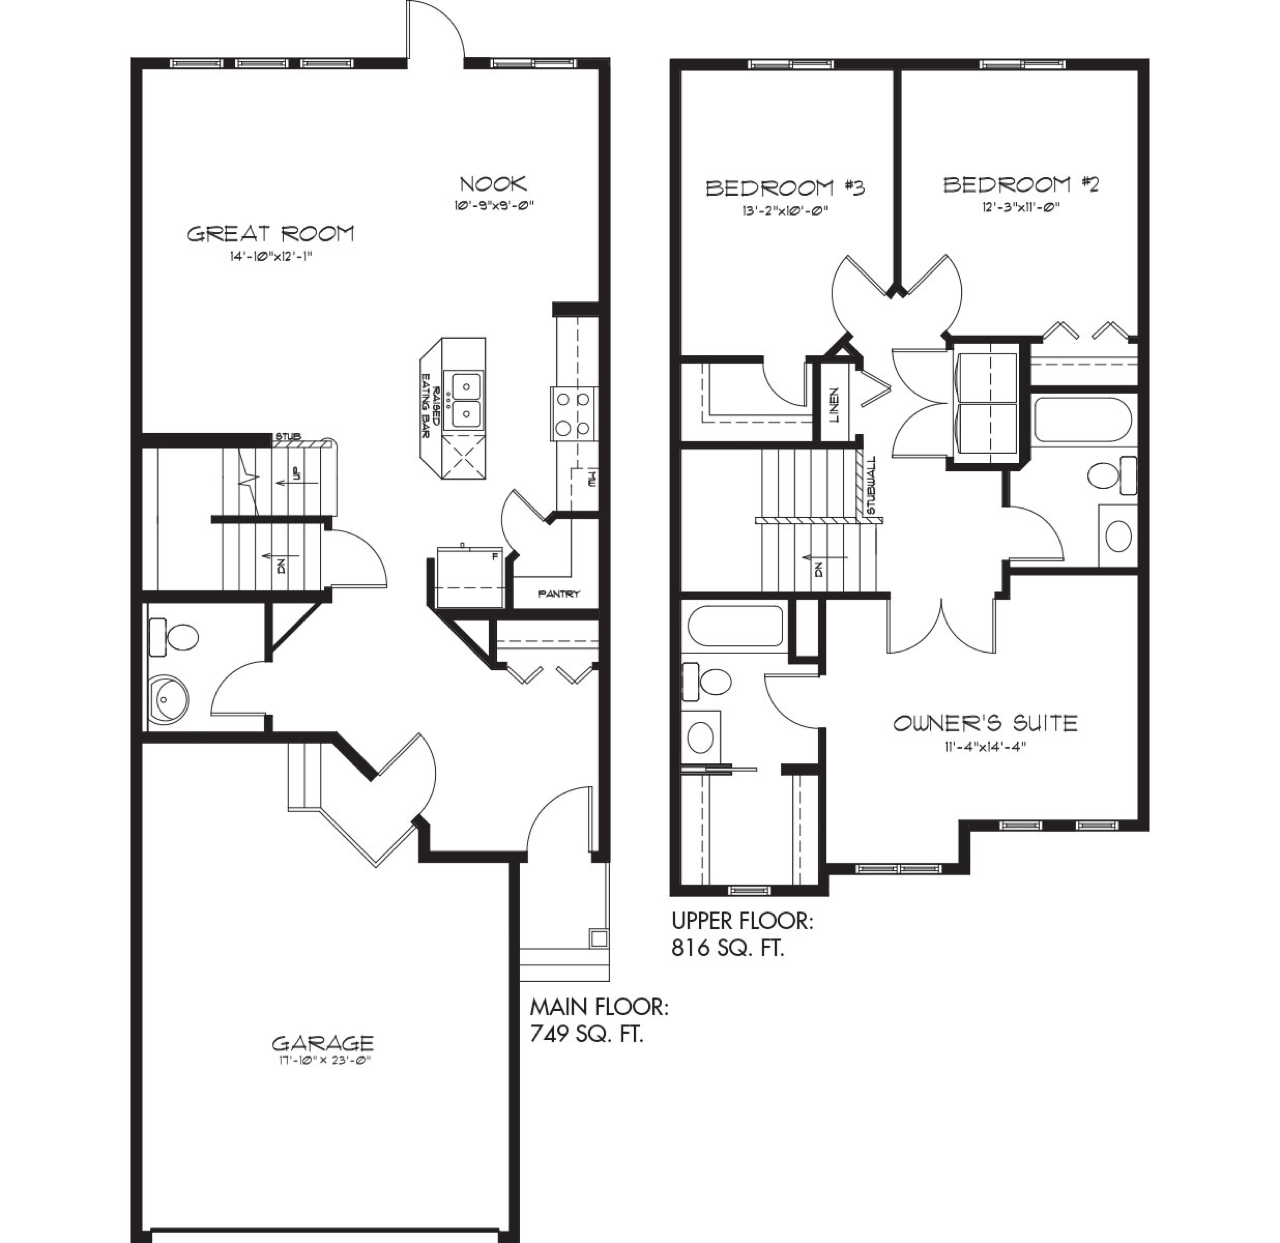 The Latest Quick Possession Homes From Pacesetter! Belmont Floor Plan Image